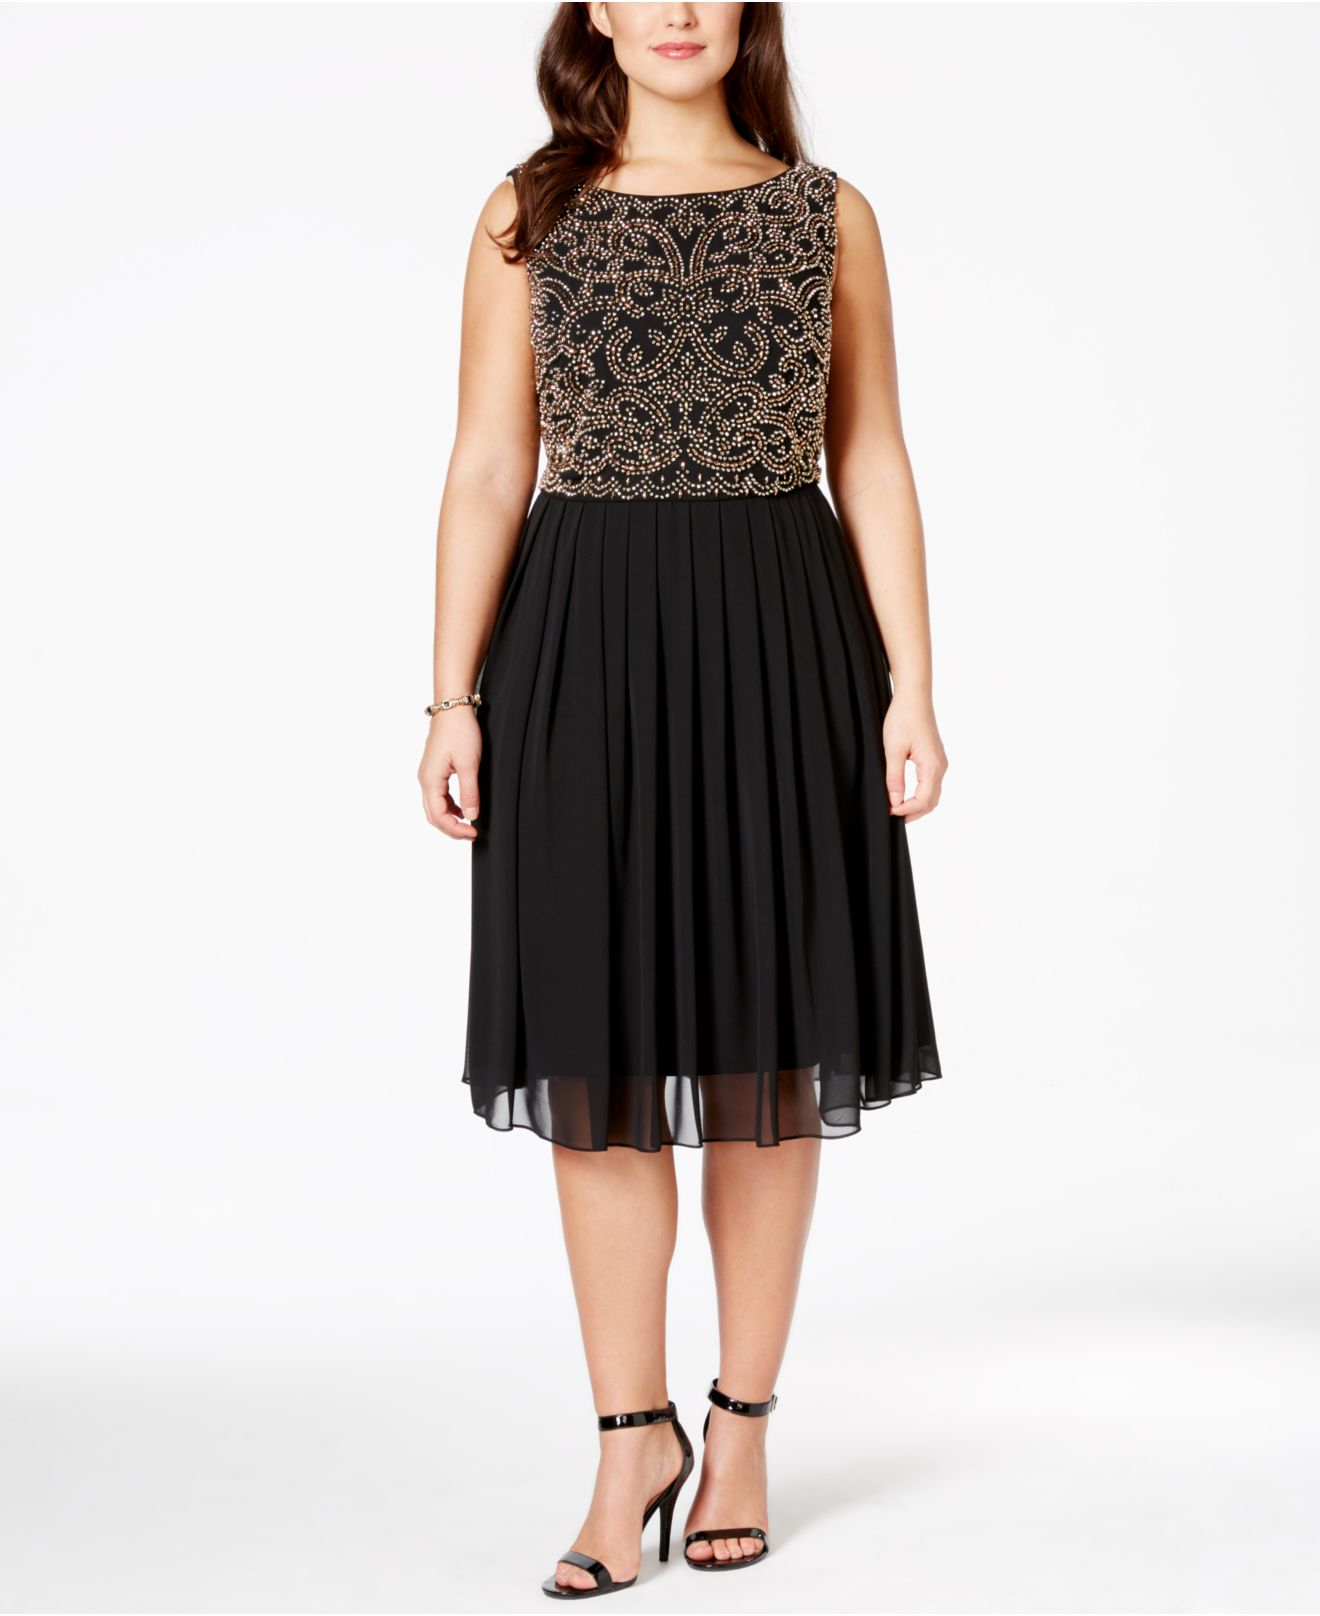 Adding some wow factor to our plus size special occasion dresses is easier than ever thanks to our convenient shoe and accessories shops. Give your look that extra oomph with a pair of sexy, strappy heels in extended sizes and widths.